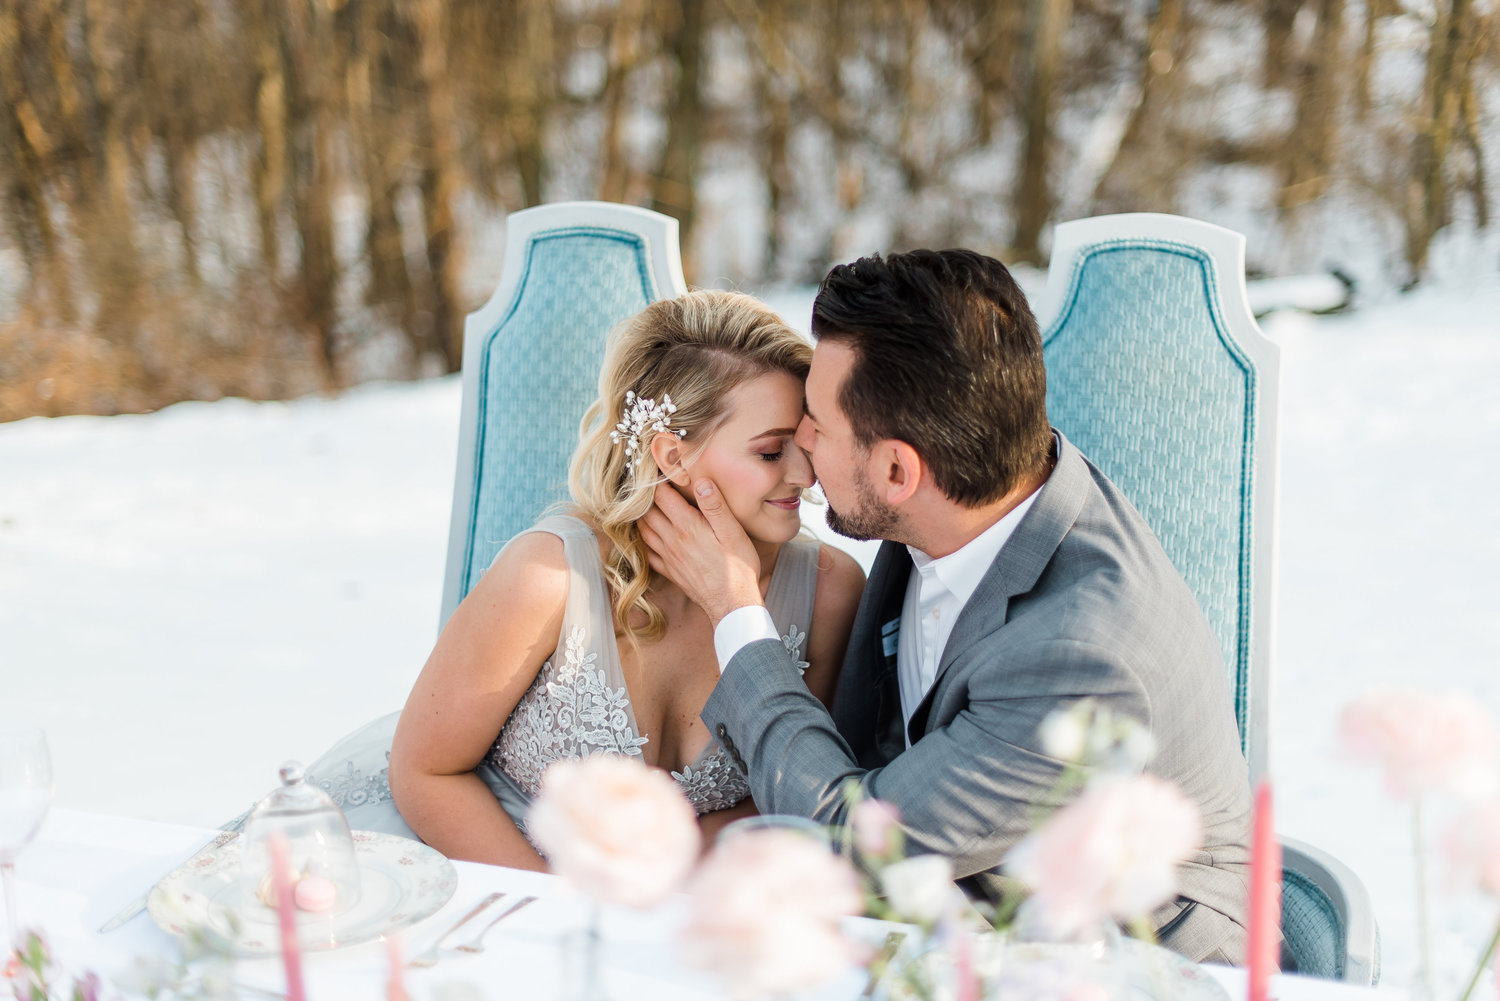 winter-romantic-snowy-pastel-pennsylvania-pittsburgh-wedding-styled-shoot-0011.jpg